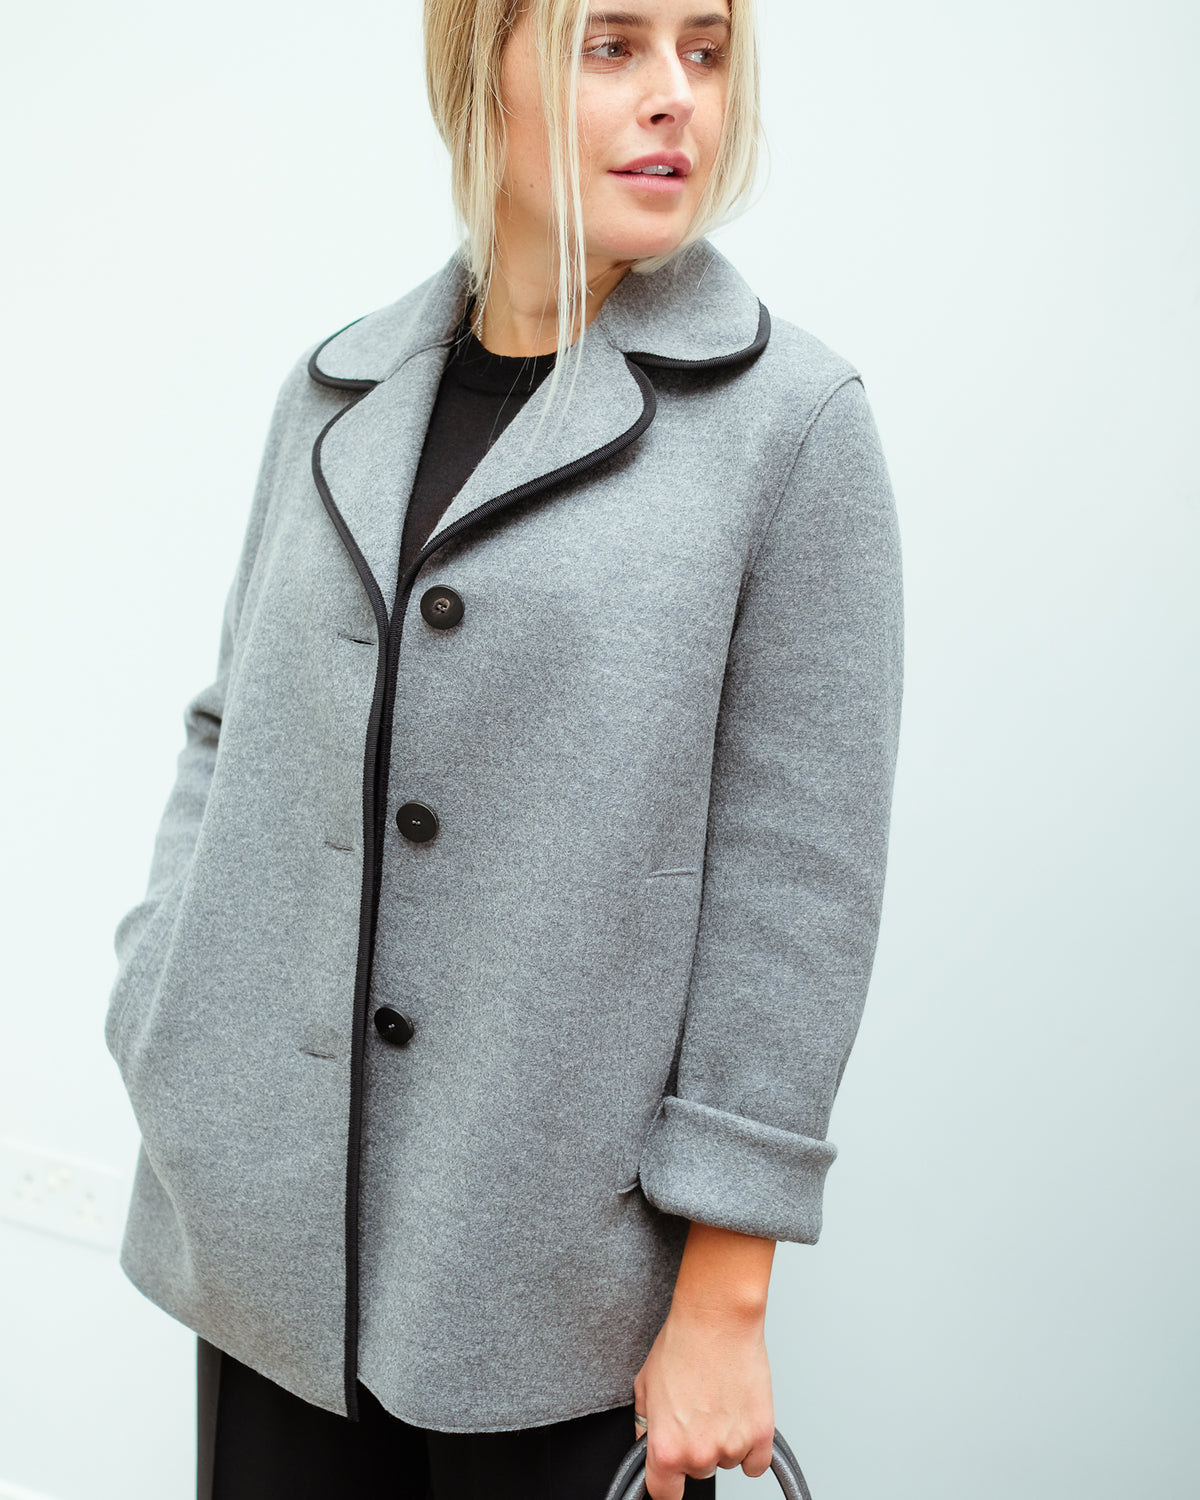 HW Contrast Piped Jacket in Grey